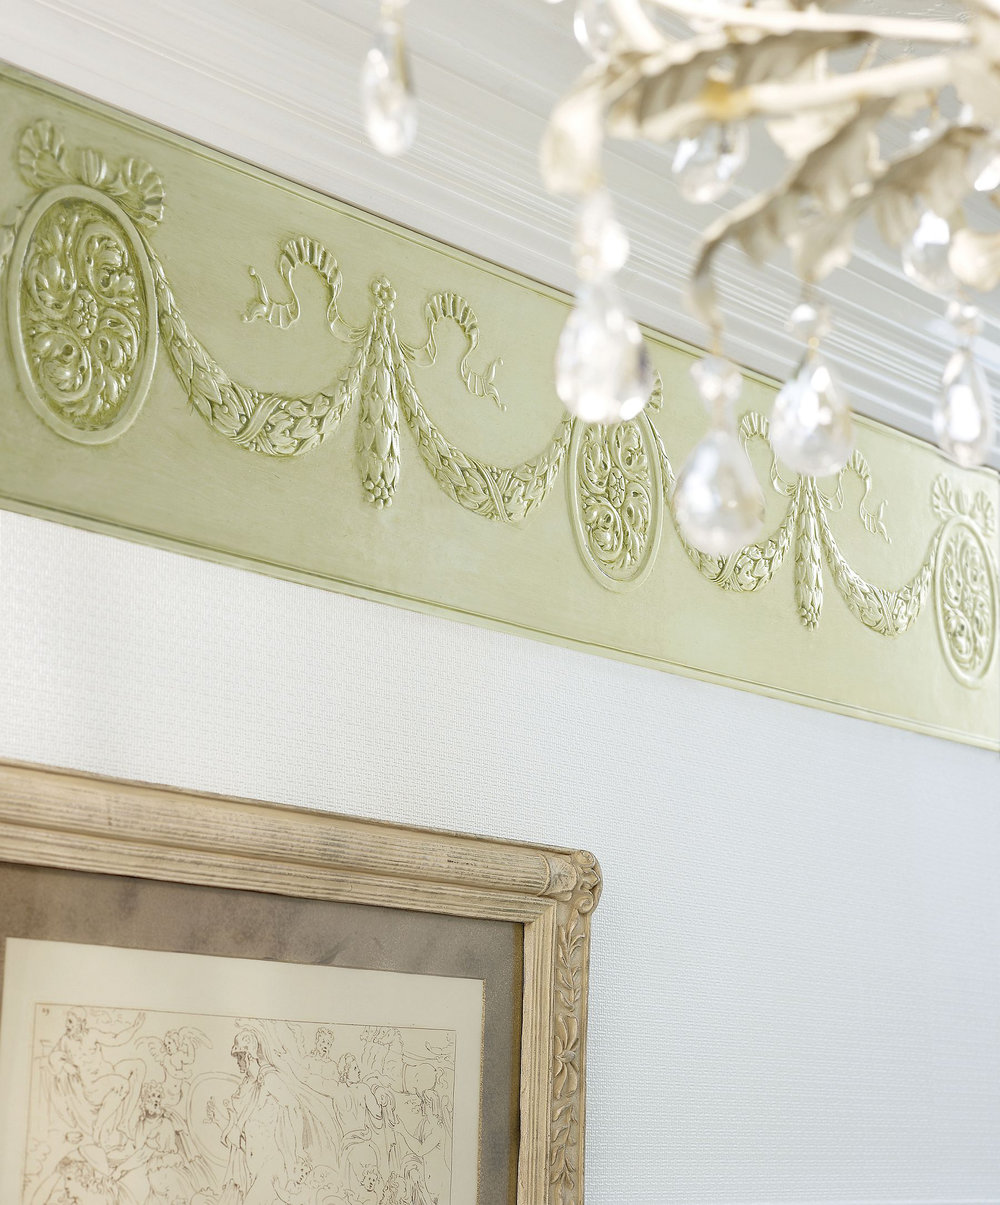 Cameo Frieze Border - Paintable - by Lincrusta